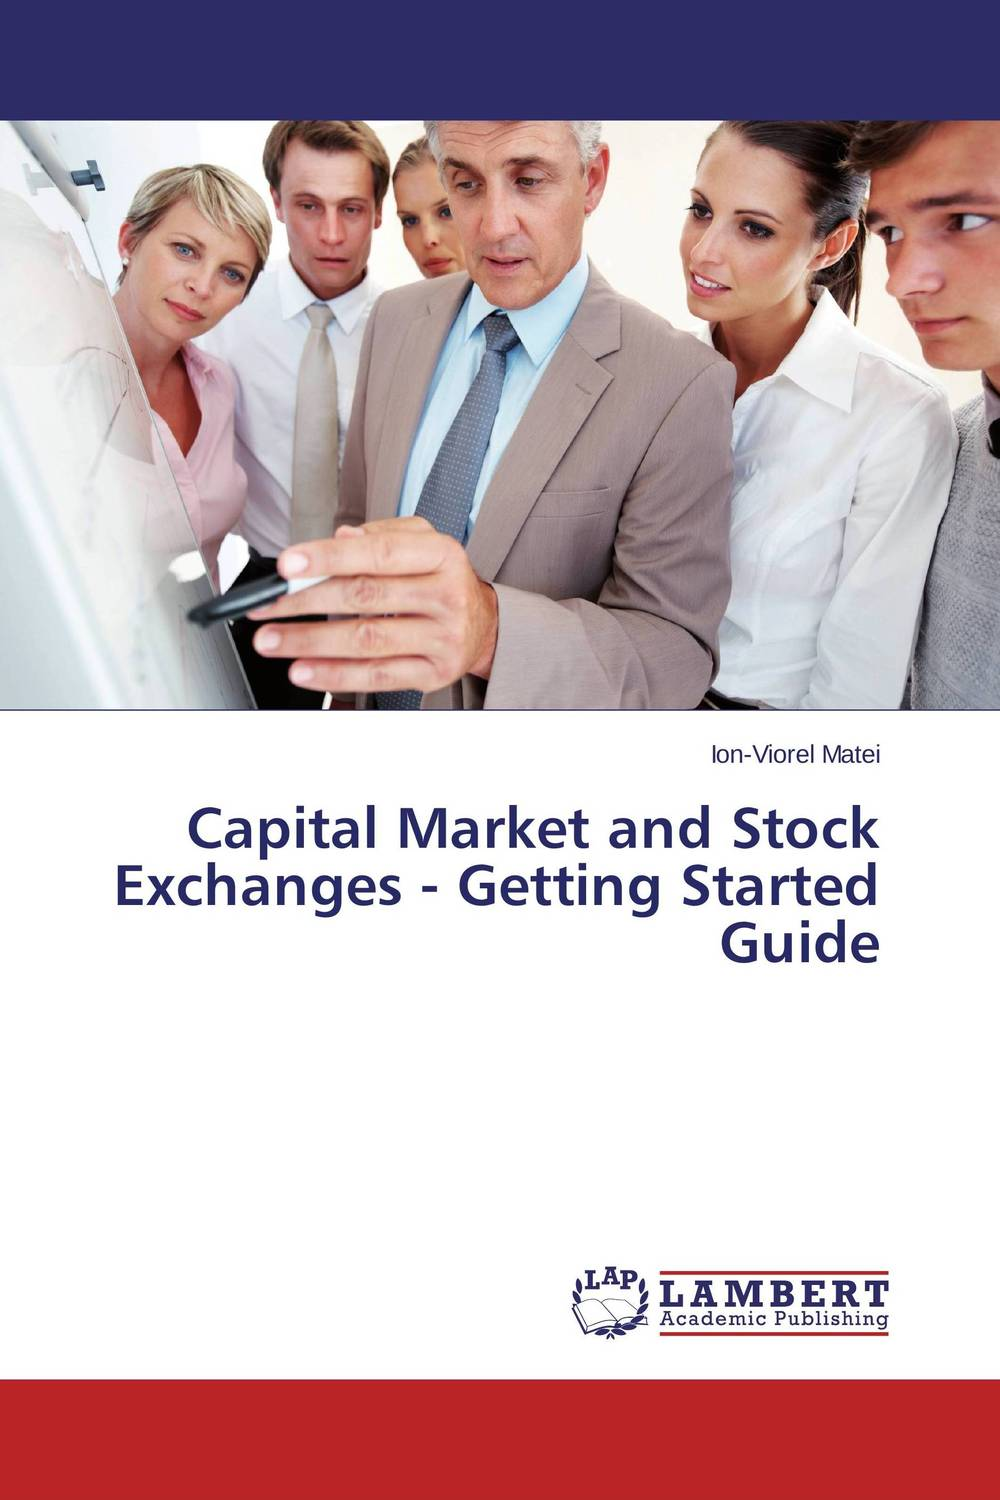 Capital Market and Stock Exchanges - Getting Started Guide